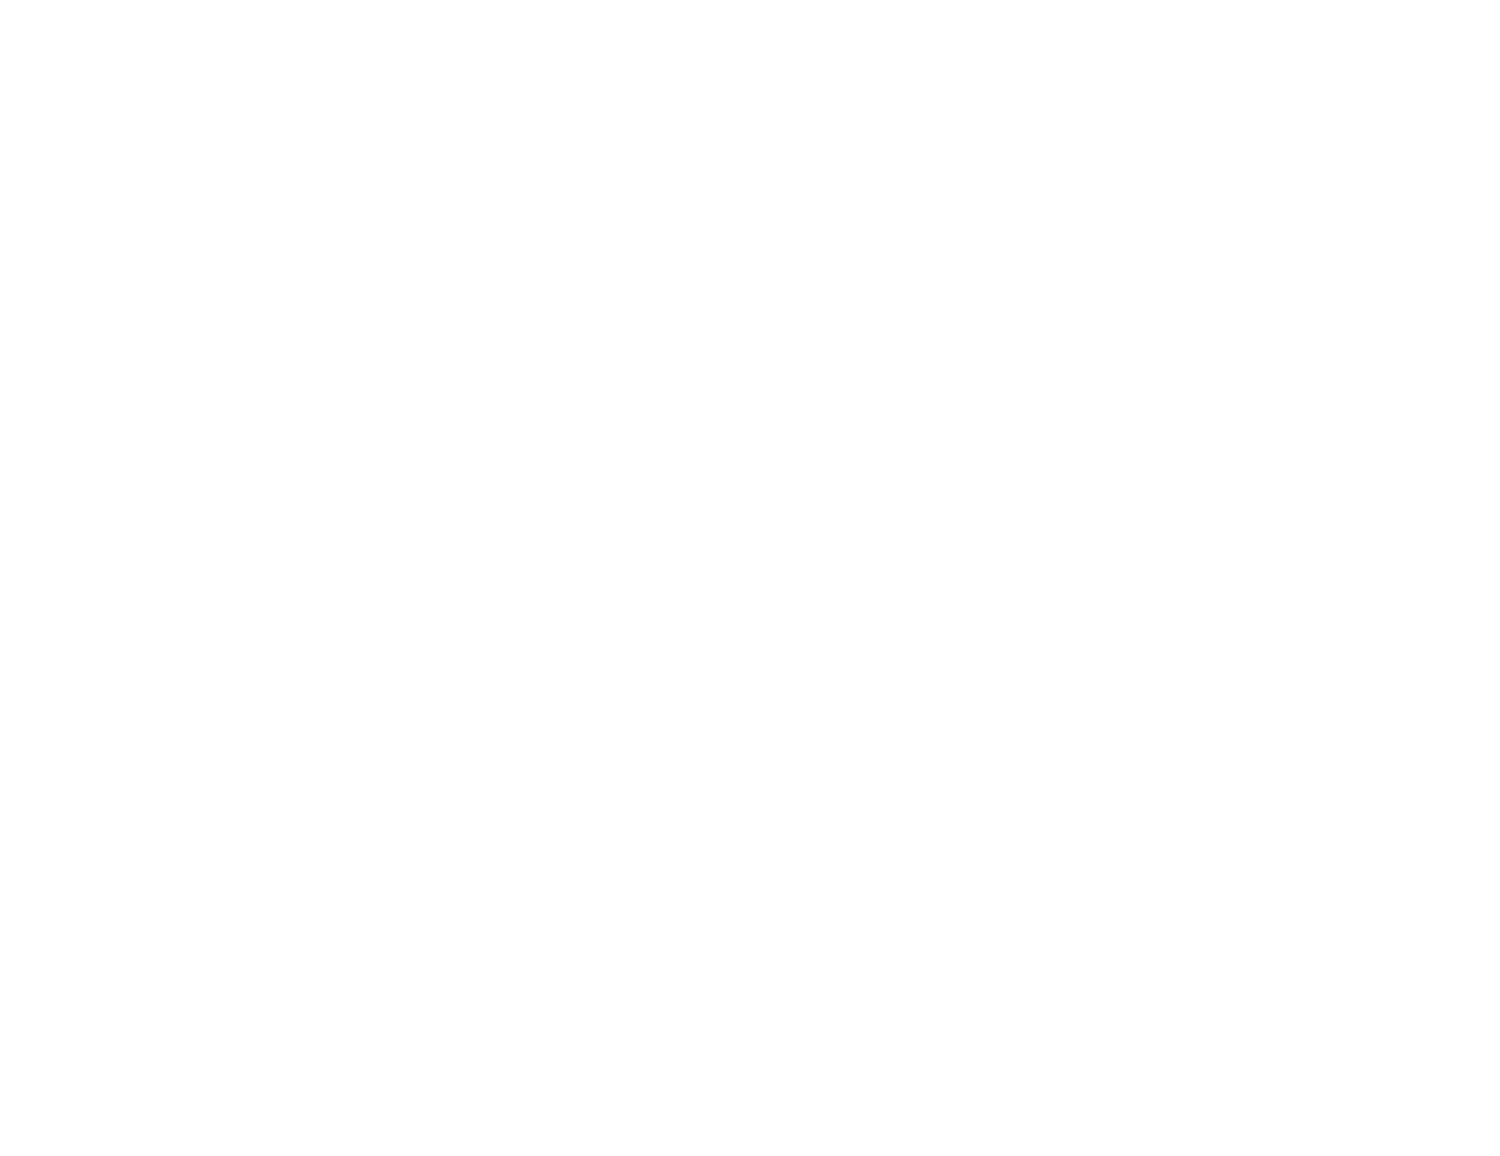 Tokyo International University Model United Nations